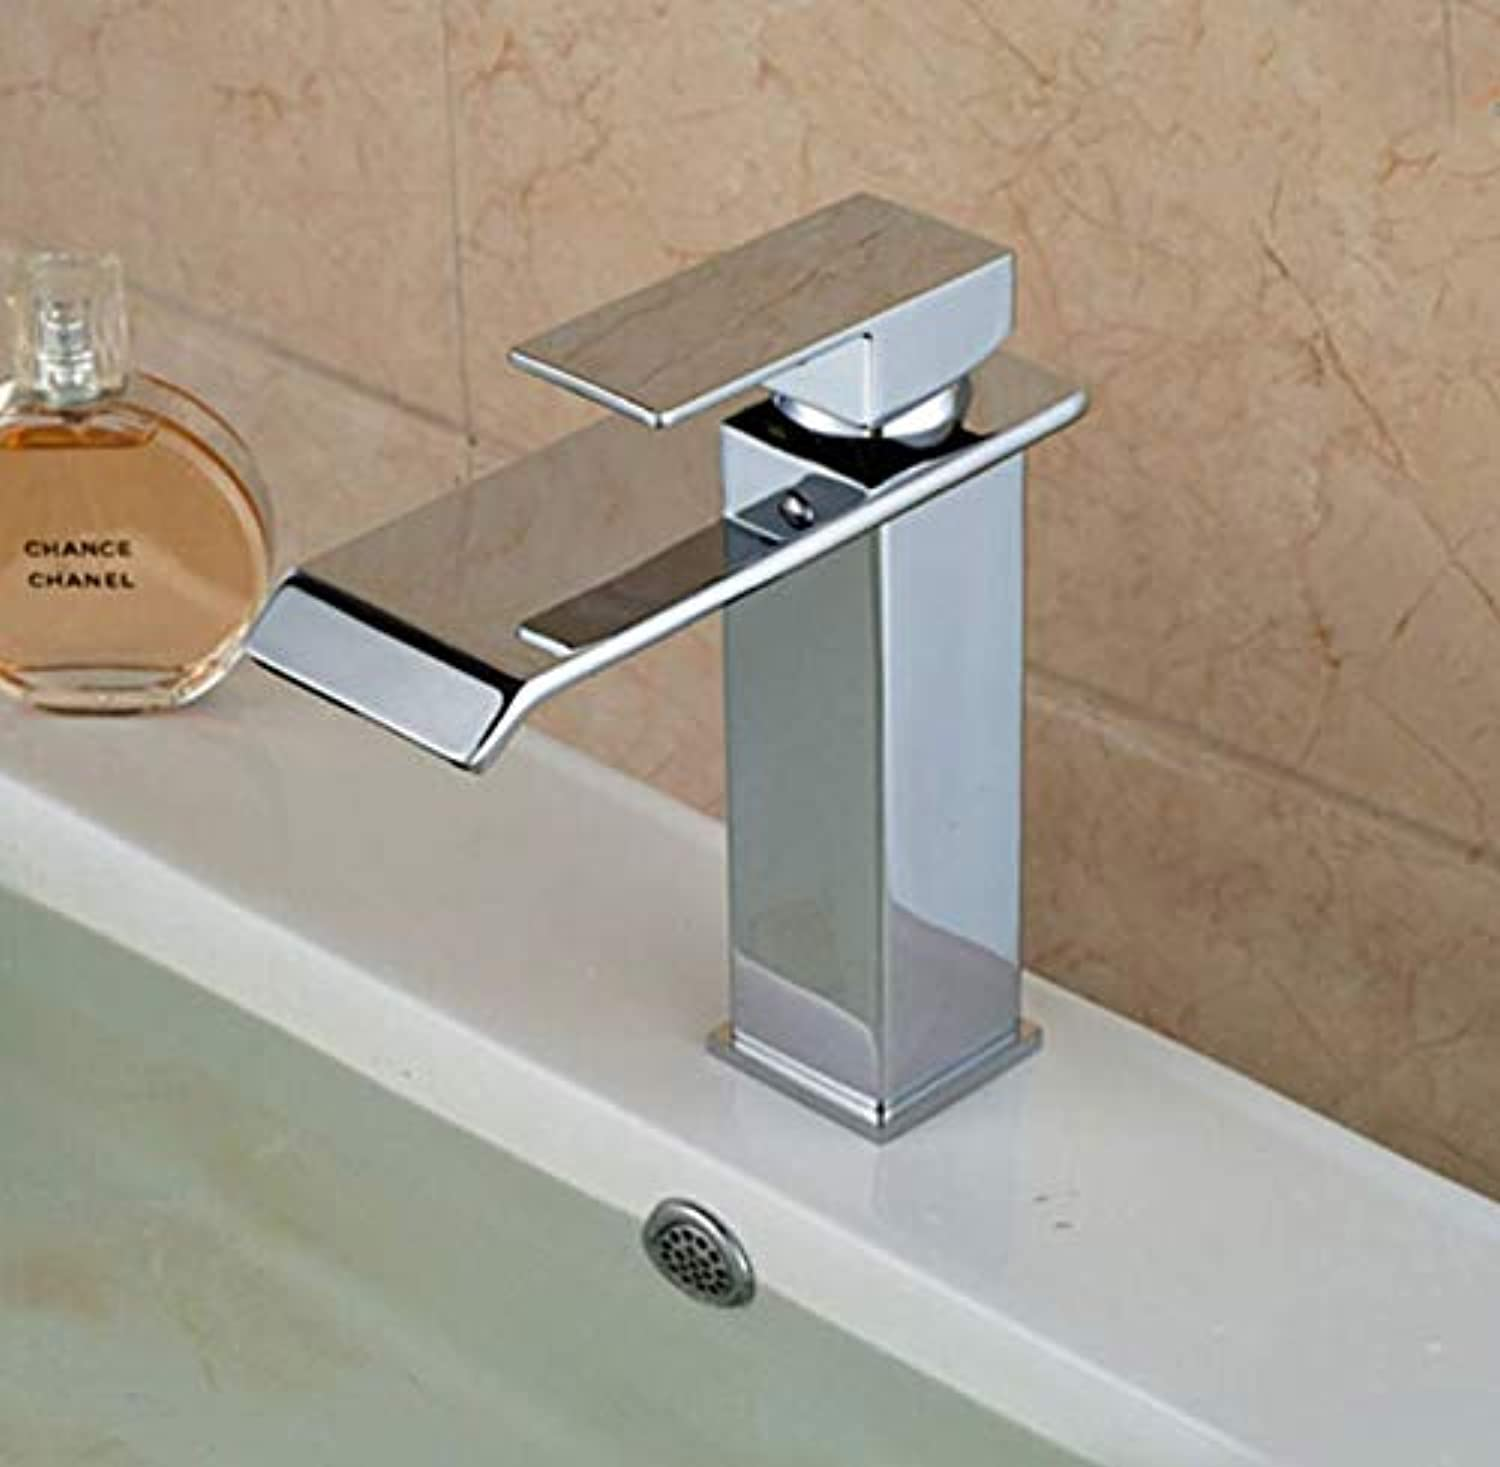 Deck Mounted Chrome Polished Finish Waterfall Bathroom Faucet Basin Mixer tap Hot and Cold Water